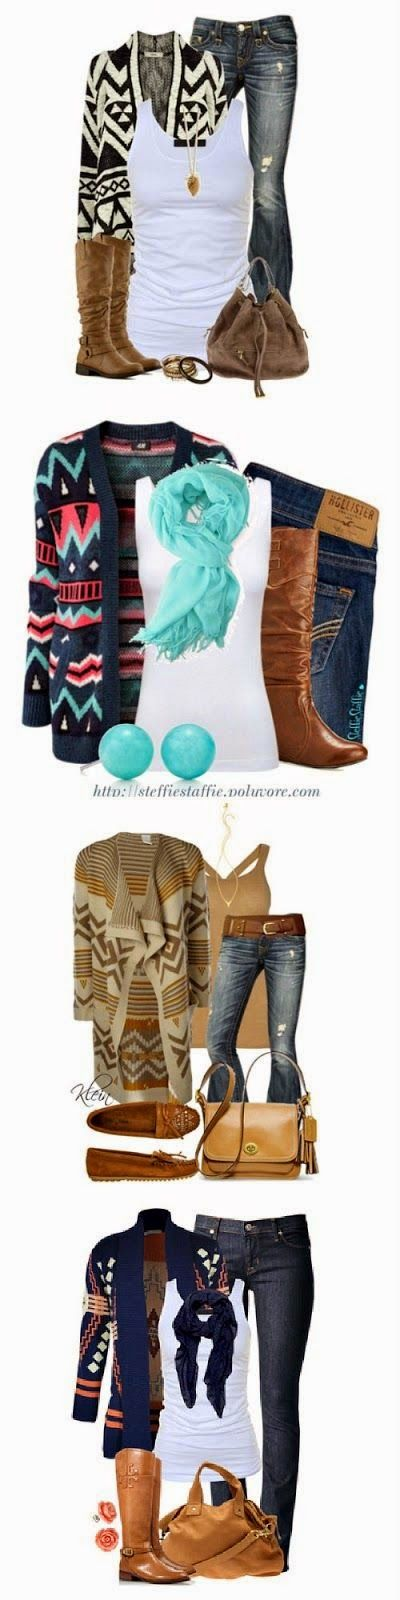 Aztec Sweaters falls winter outfits. Man am I sucker for cardigans and winter clothes in general